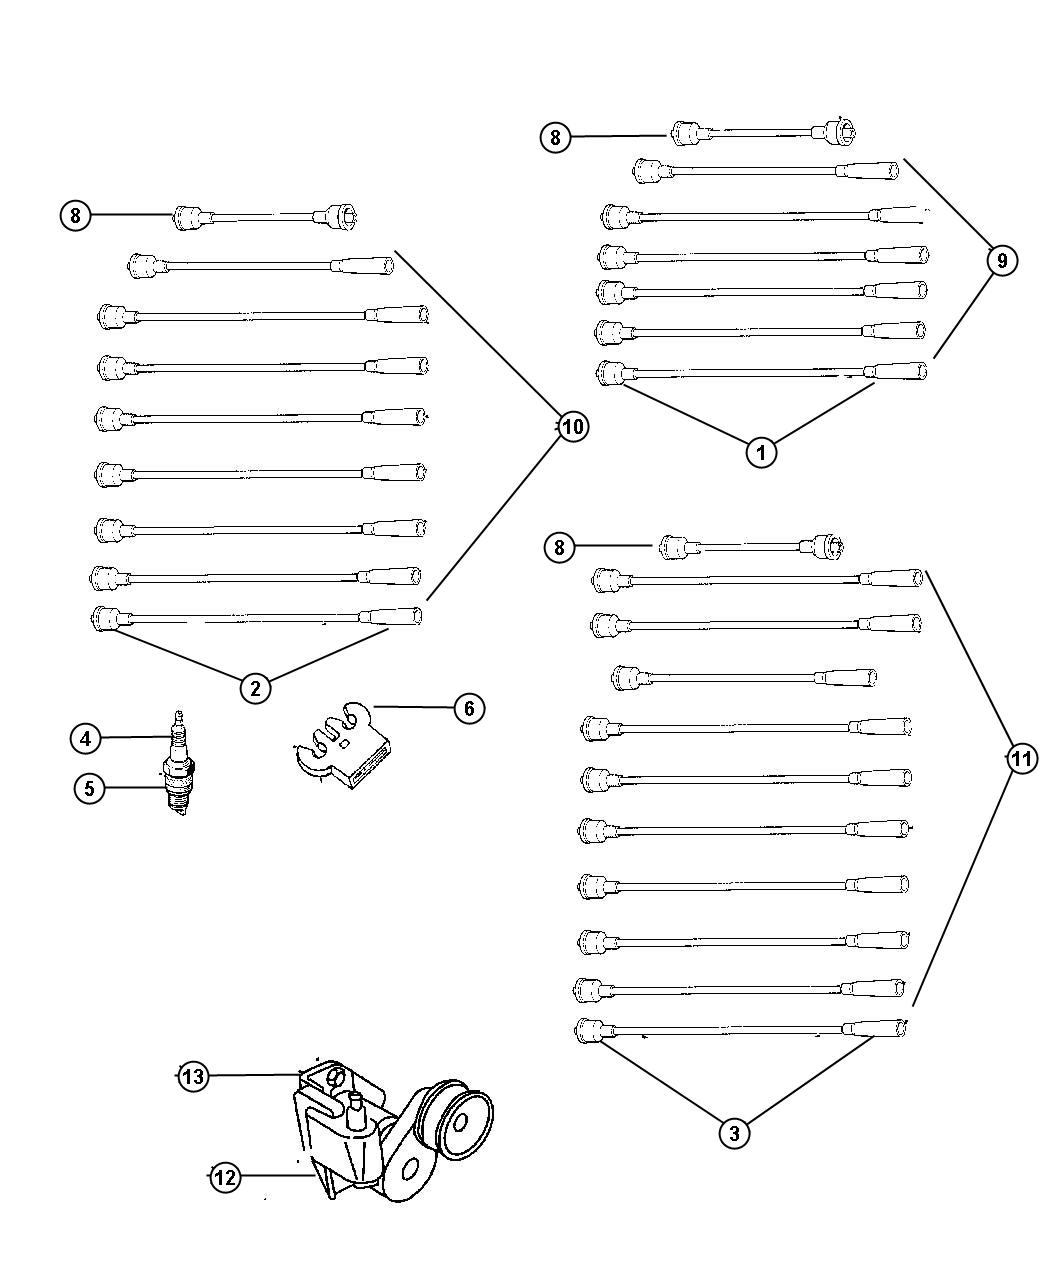 Dodge Ram Cable Ignition 4 4 No 4 Spark